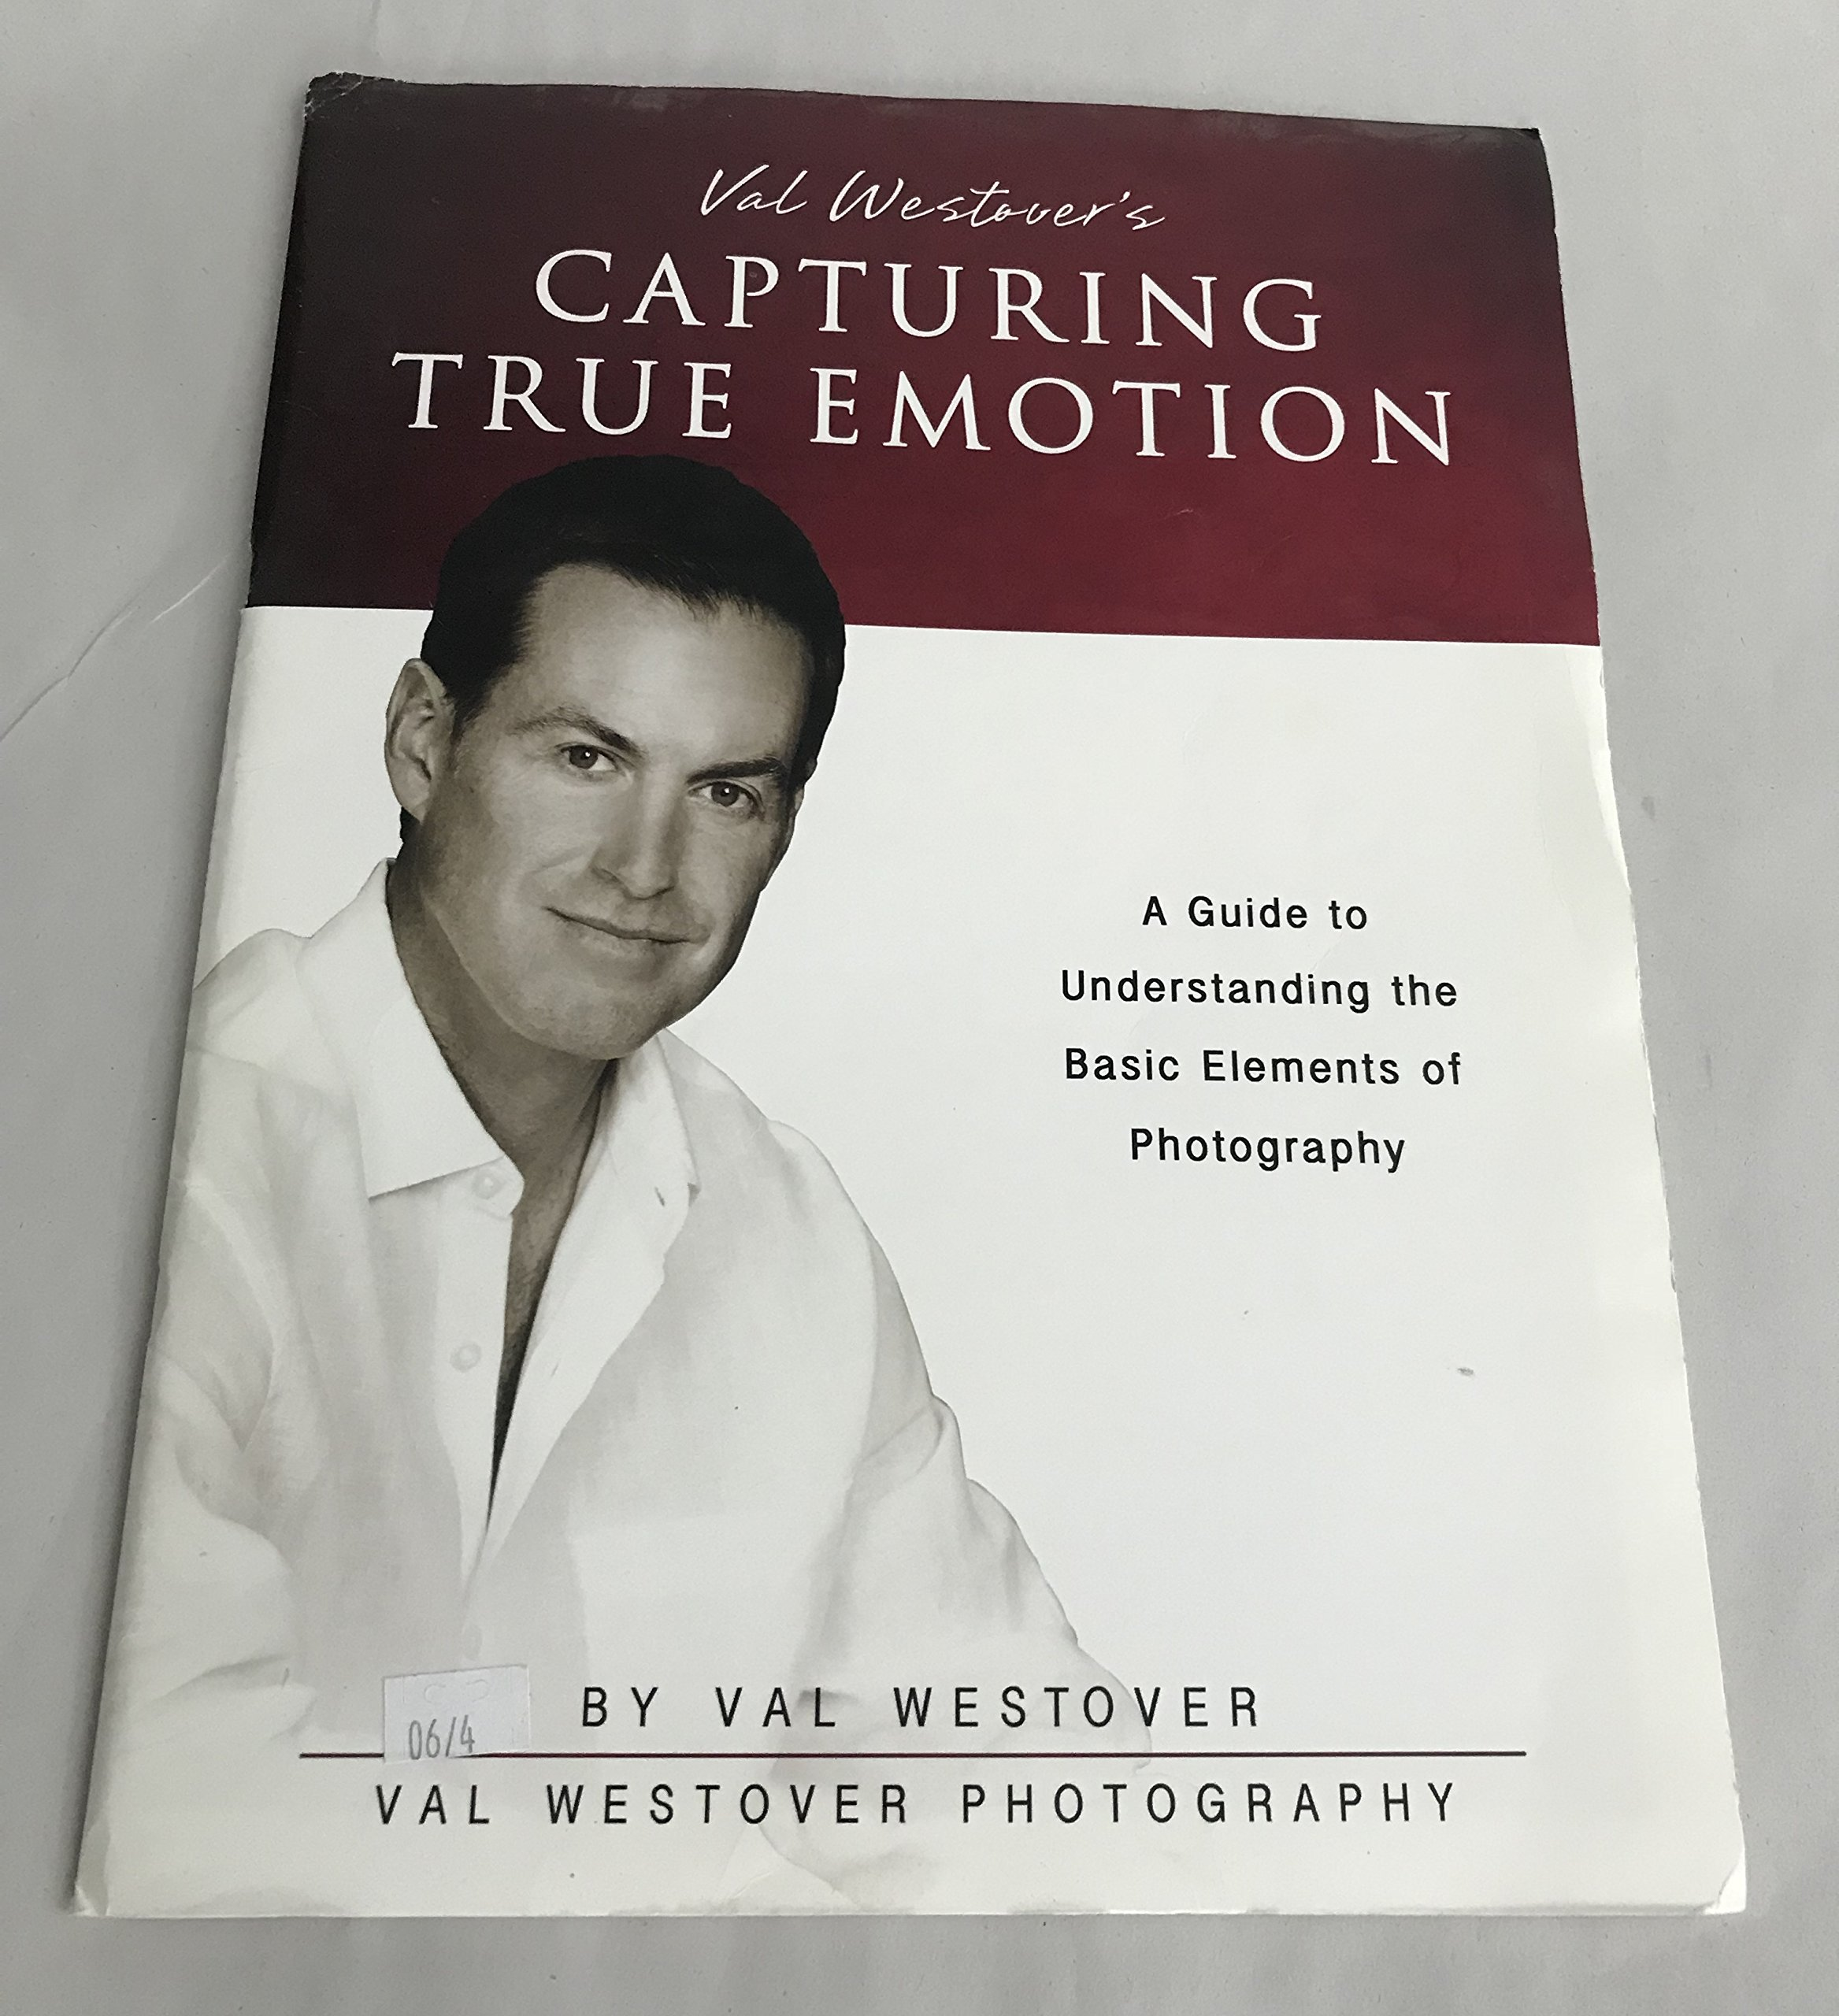 Val Westover's Capturing True Emotion: Val Westover: 9780615406466